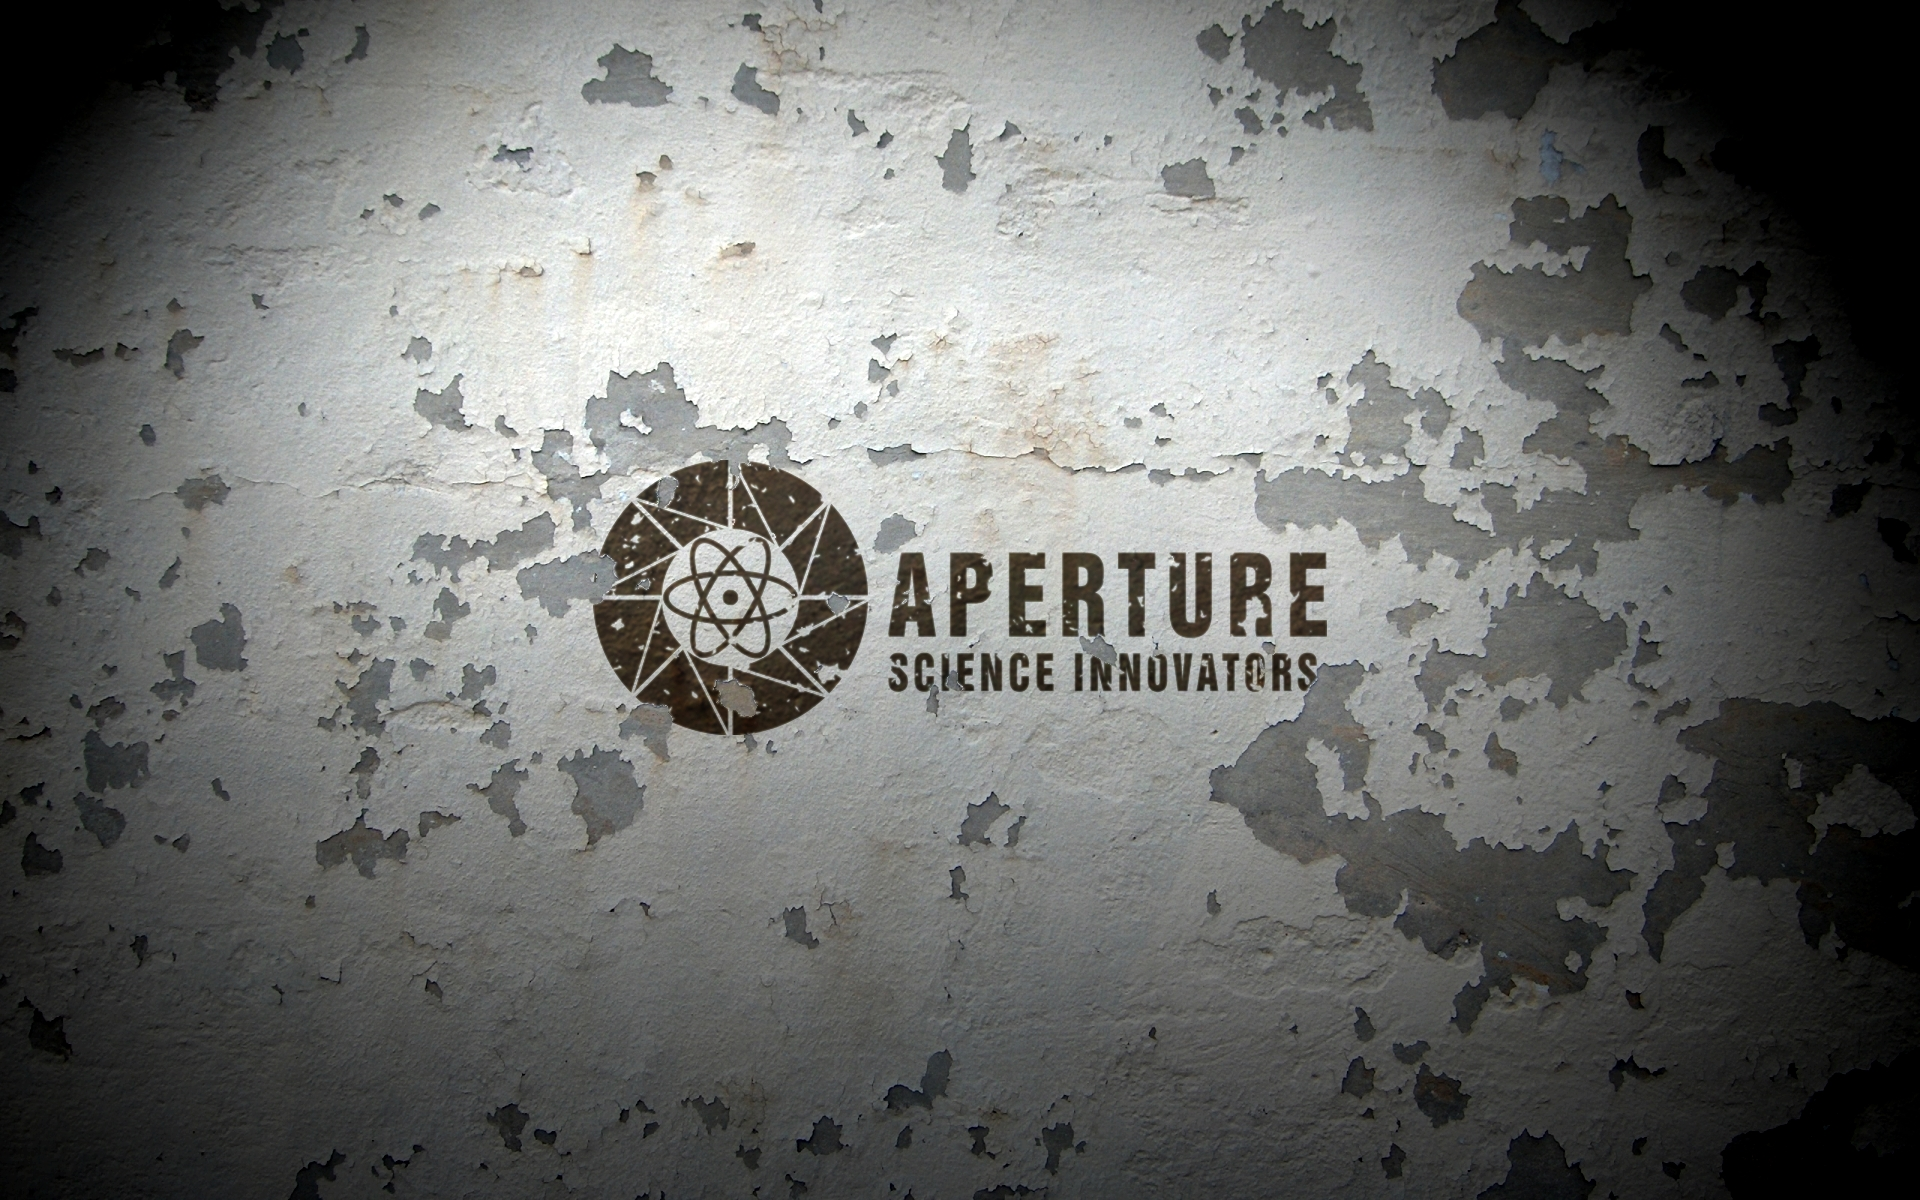 Aperture Science Innovators Peeling Paint HD Wallpaper ...Aperture Science Innovators Wallpaper